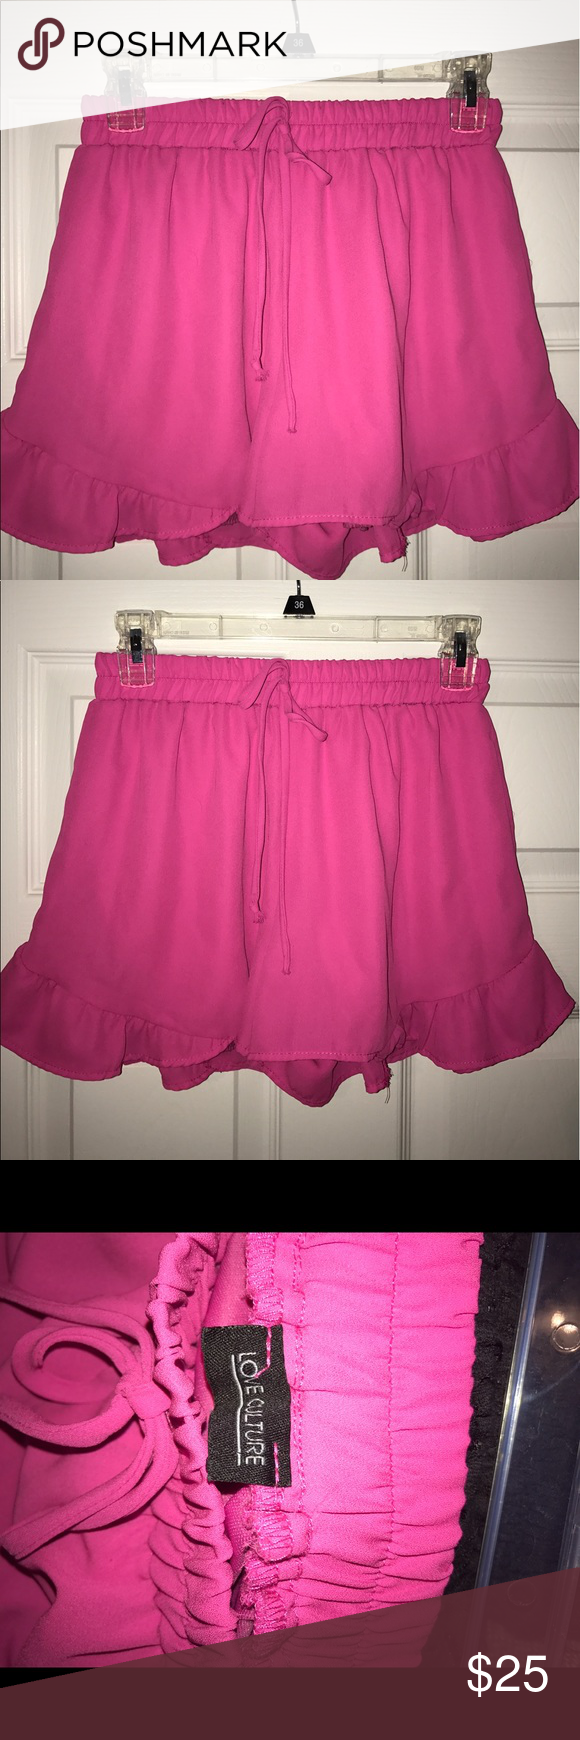 Hot pink shorts with ruffles size S HOT pink shorts with ruffle on ...